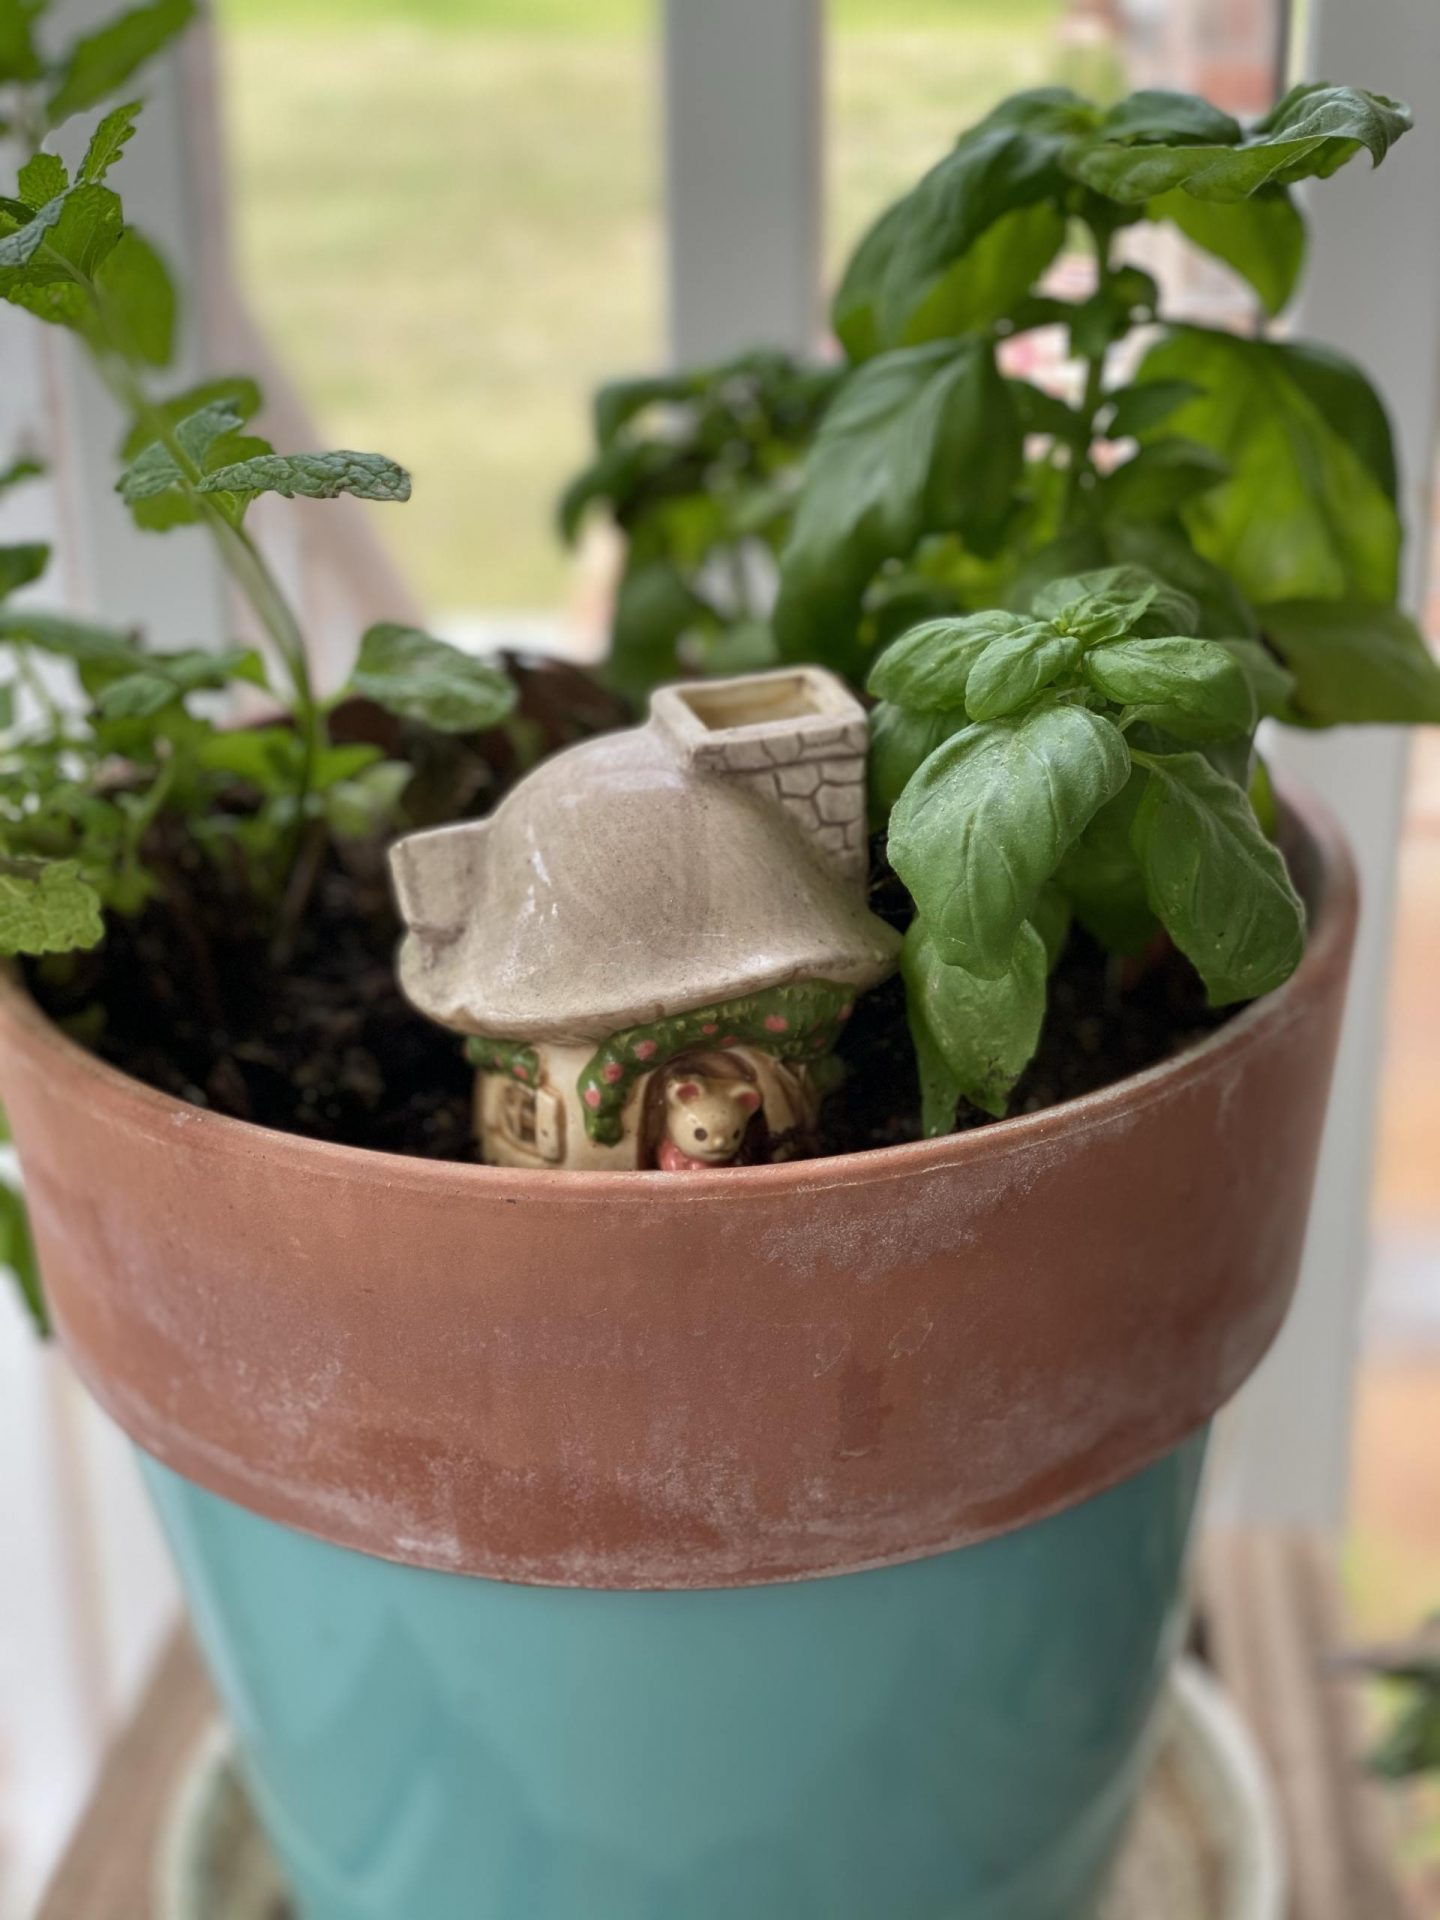 NC blogger Rebecca Lately is sharing her favorite places to buy plants online. If you love house plants, be sure to check this out!